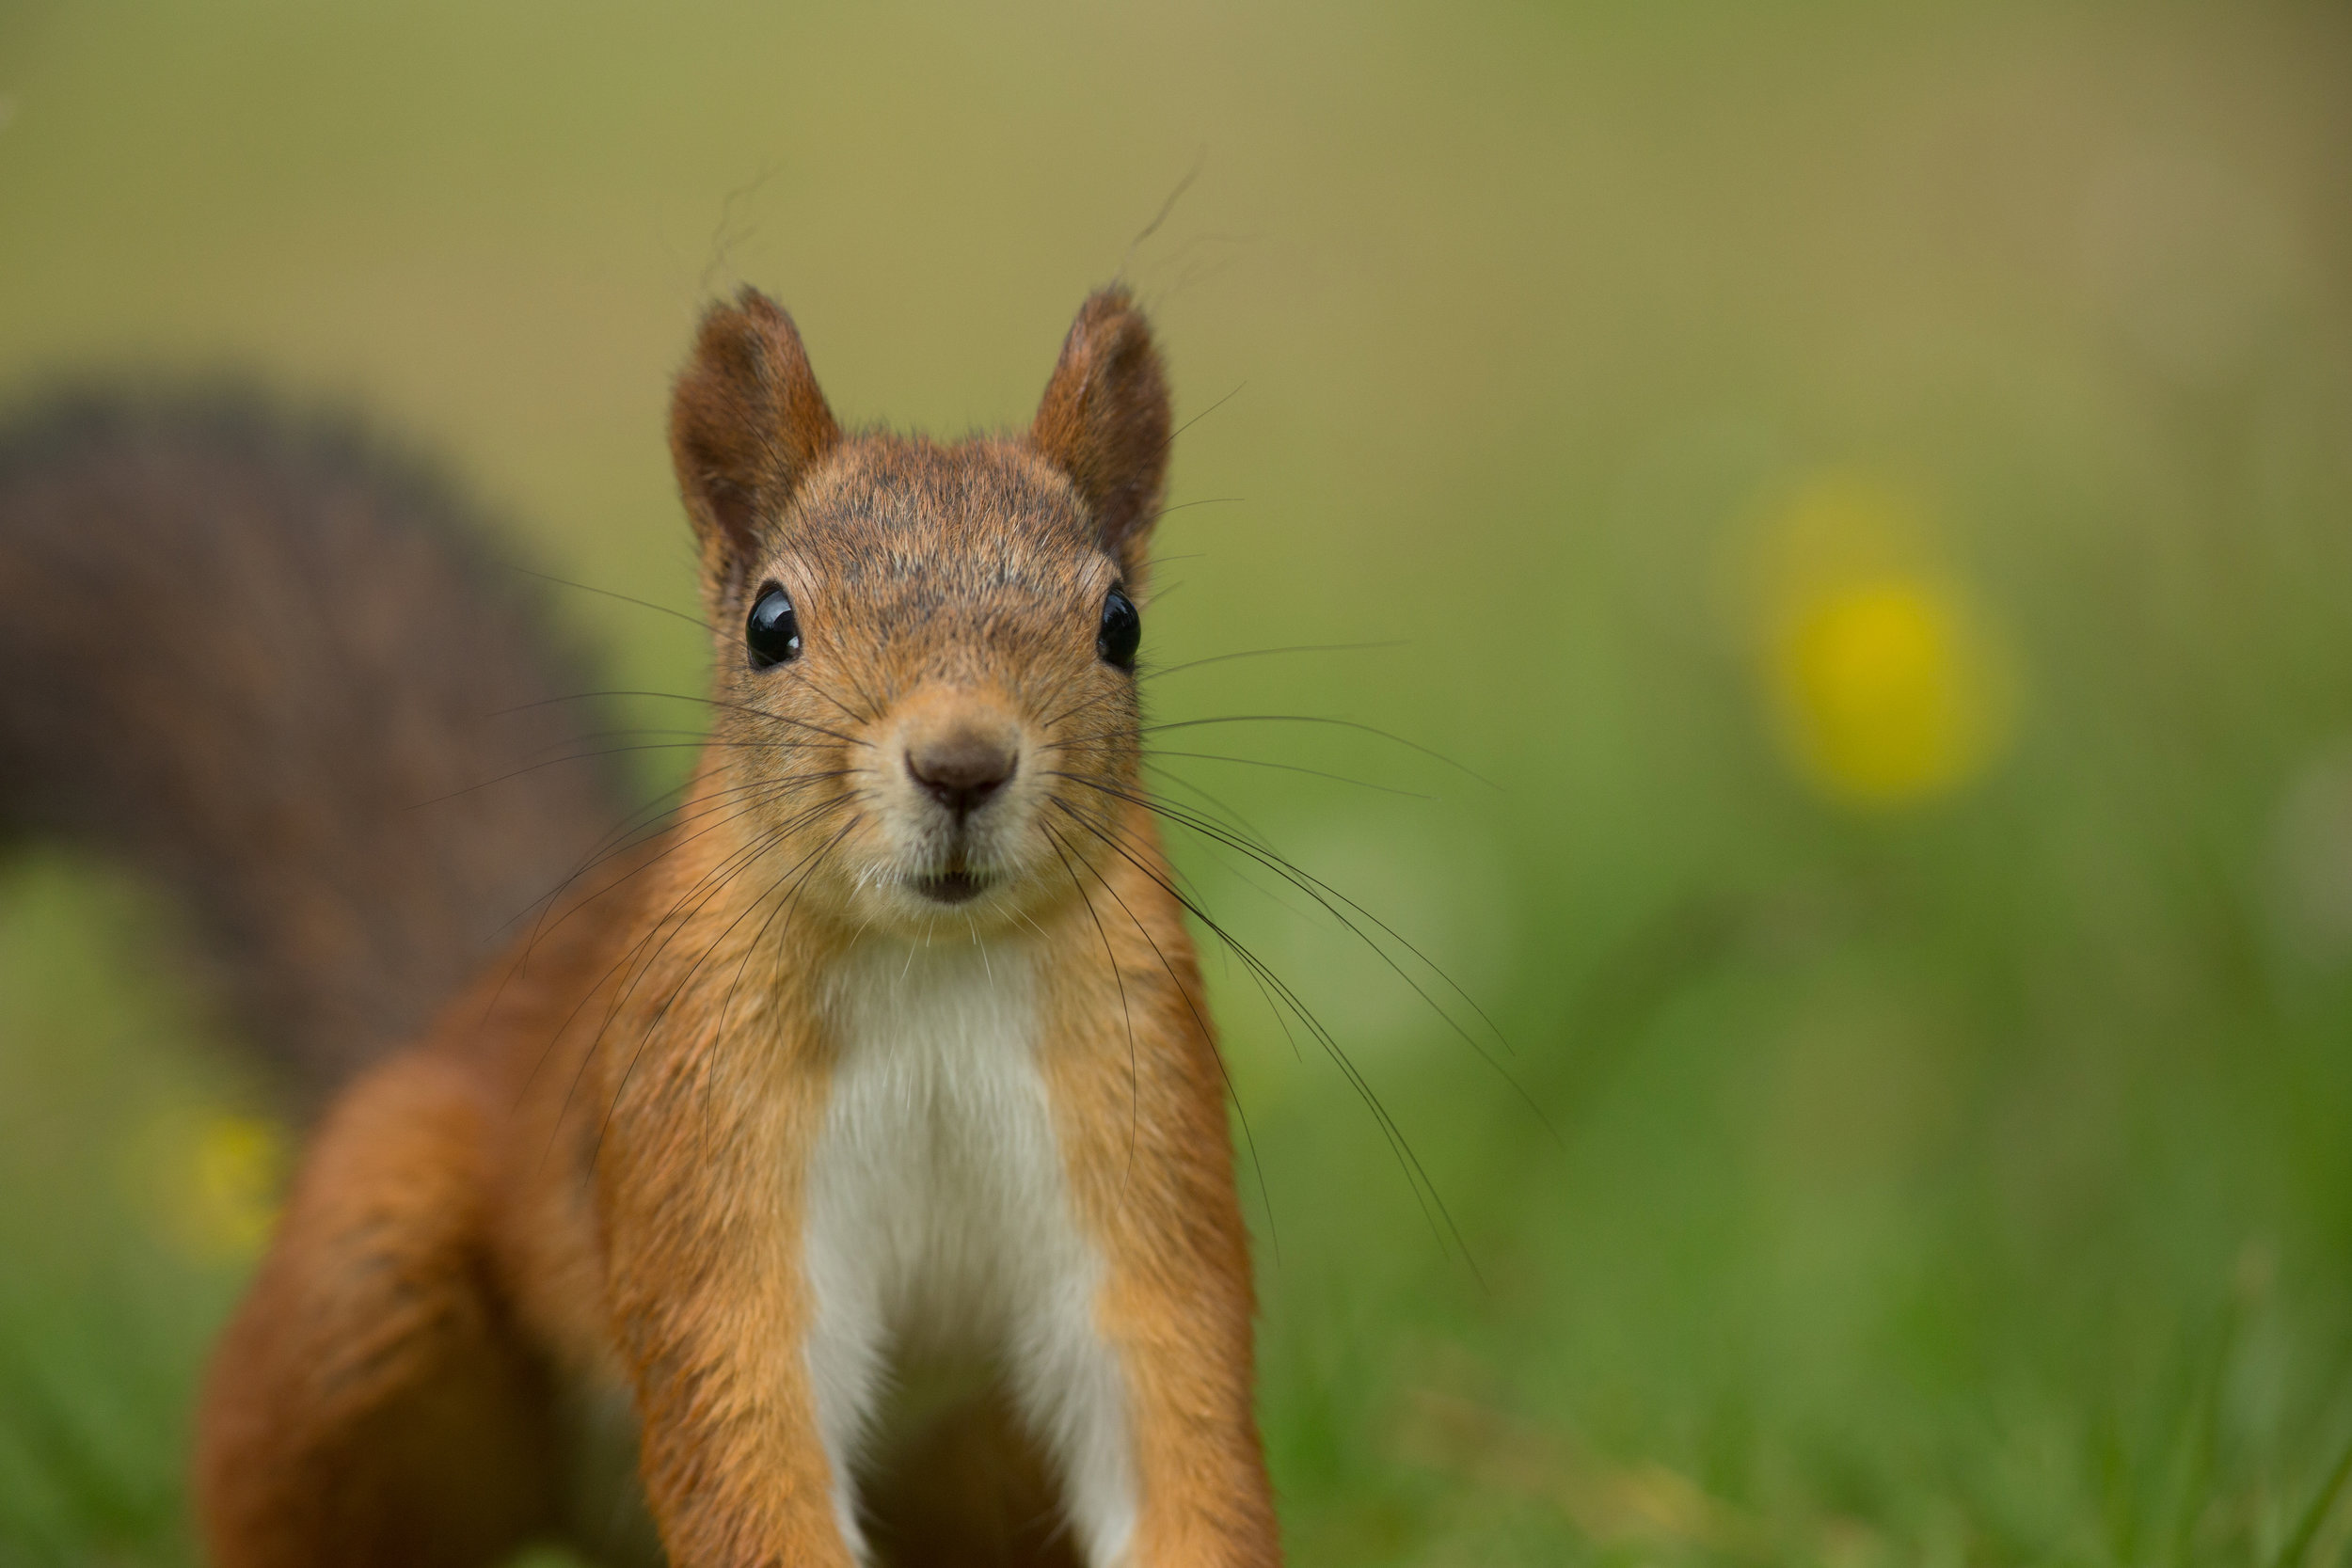 Red_Squirrel_0T2A9759.jpg